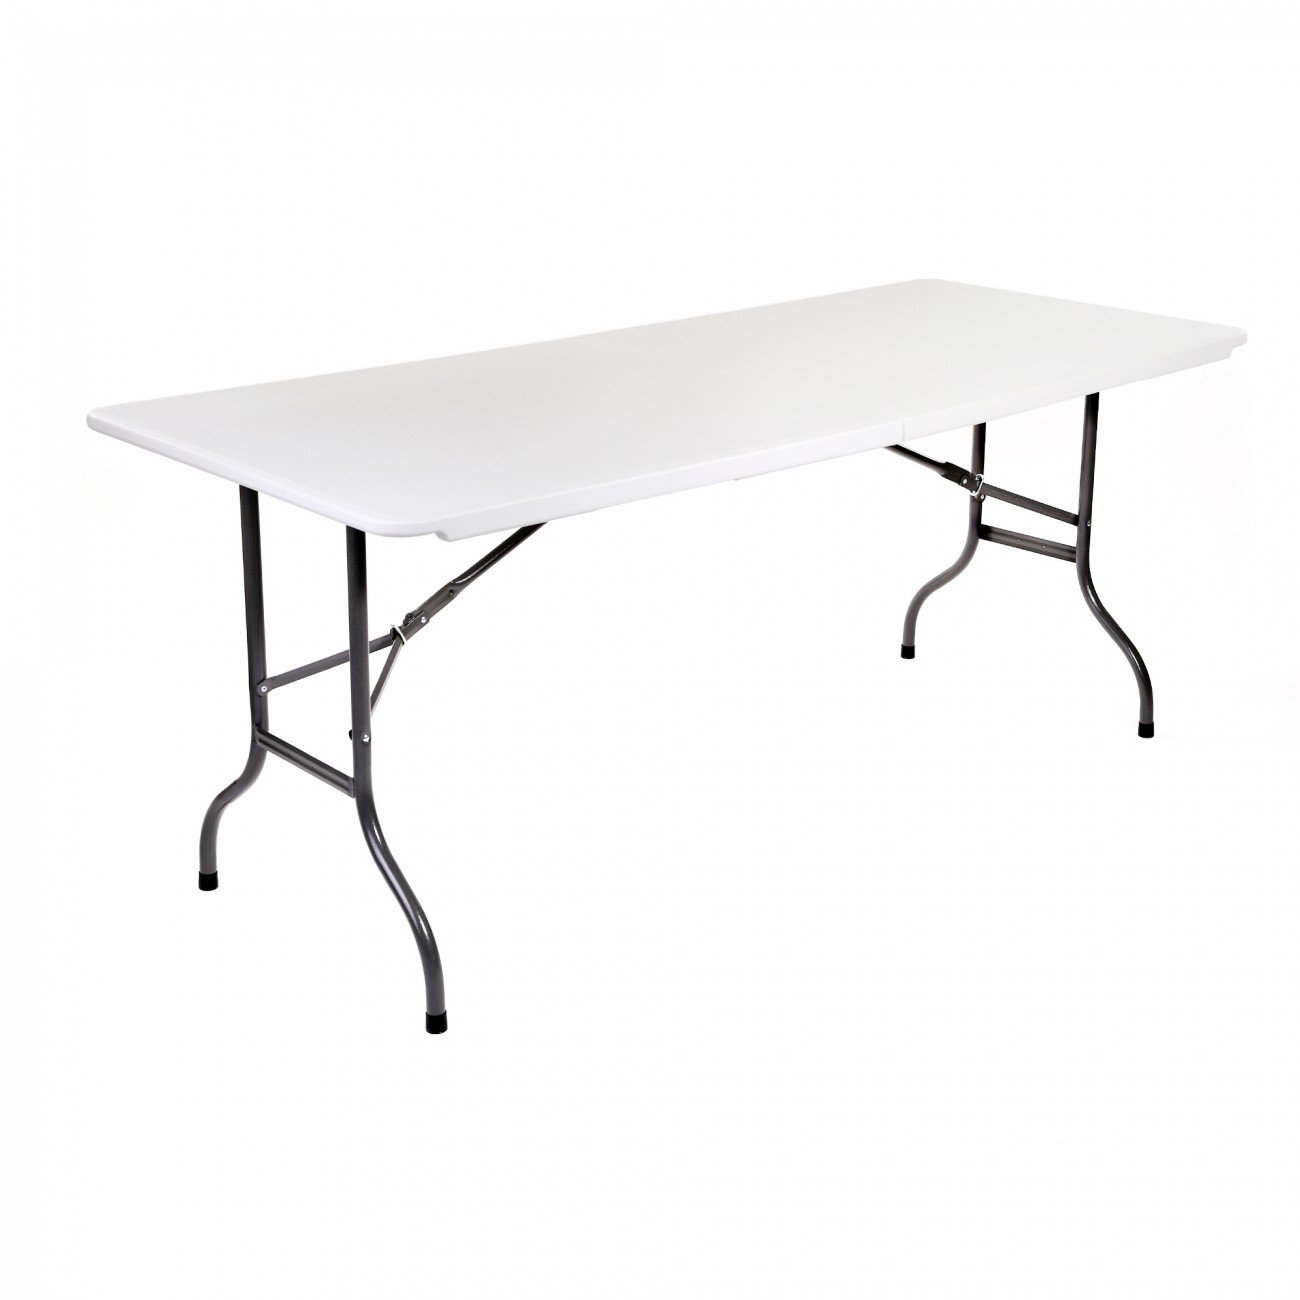 acheter table pliante table pliable table rabattable table escamotable